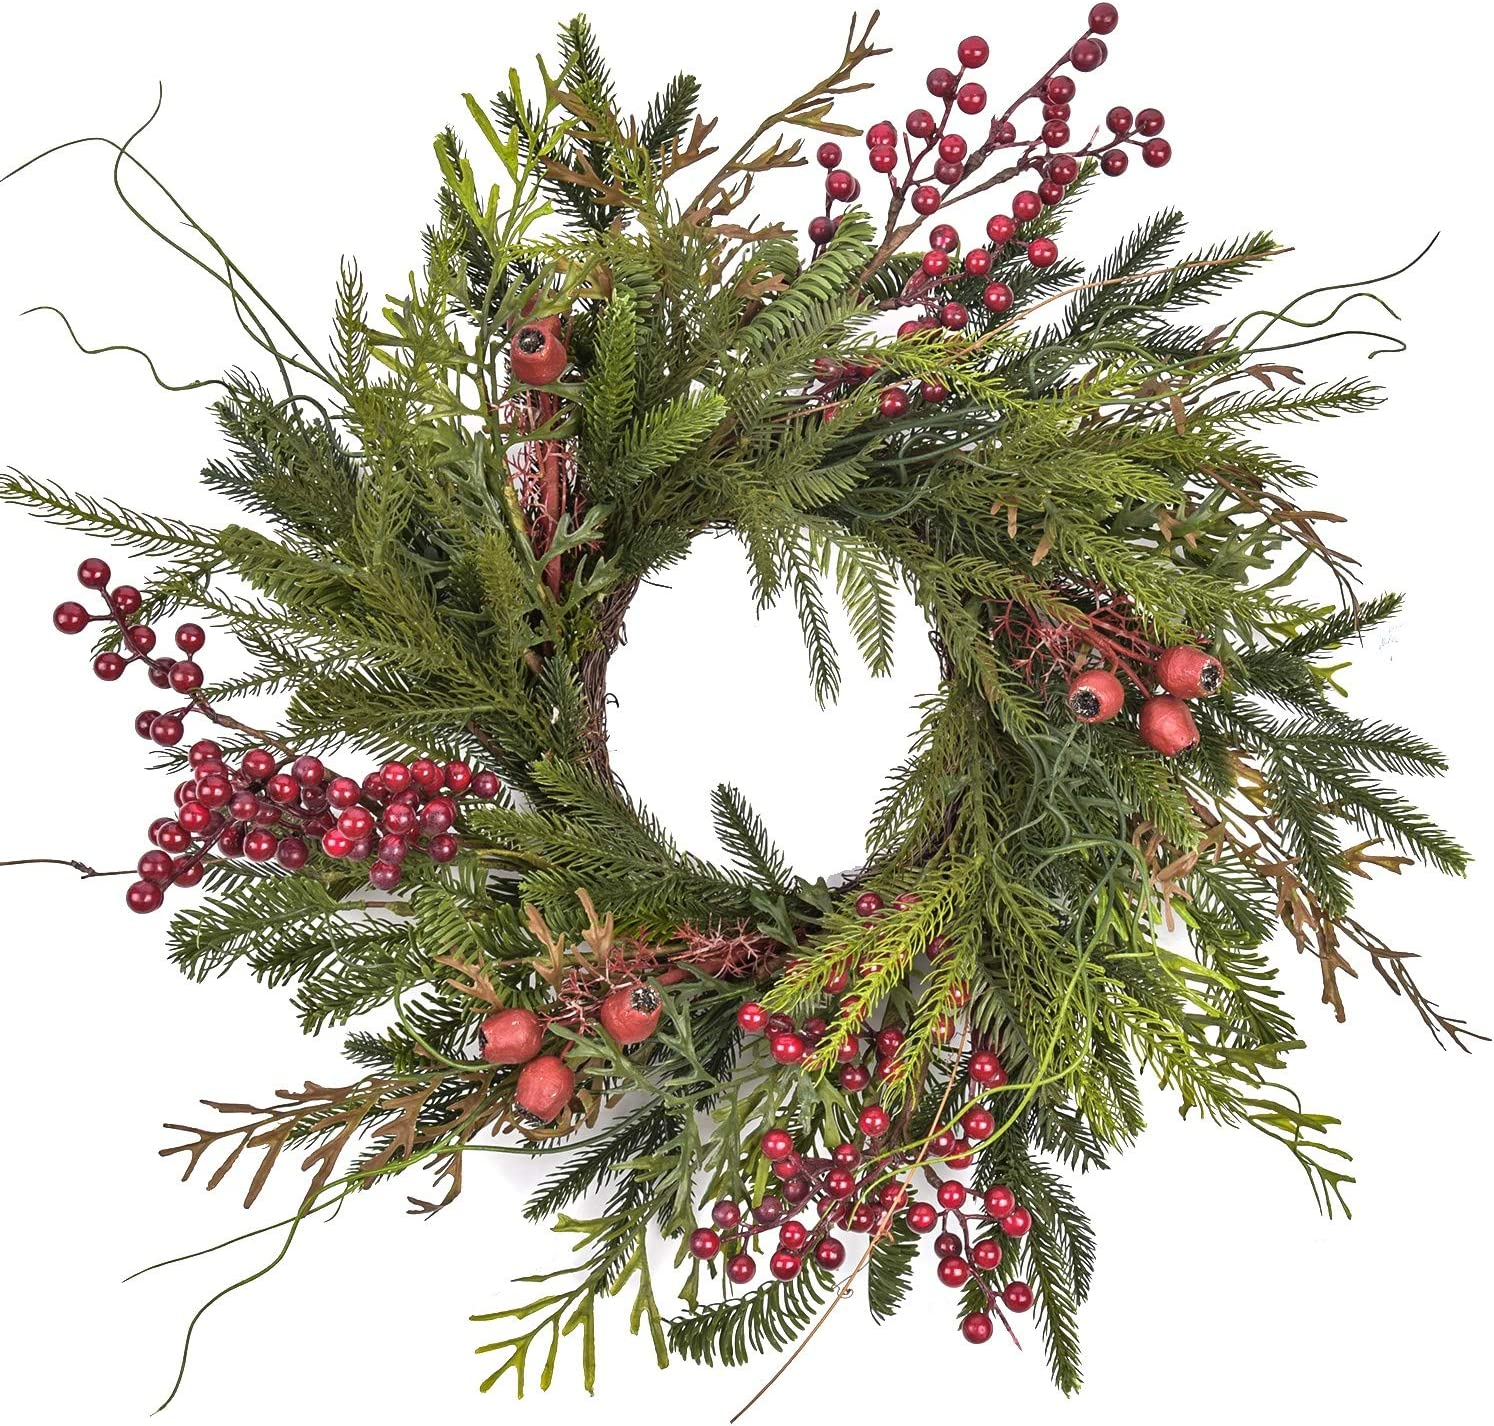 Max 40% OFF Year-end annual account RED DECO Christmas Door Wreath 20-22 - Inch Berr Pine